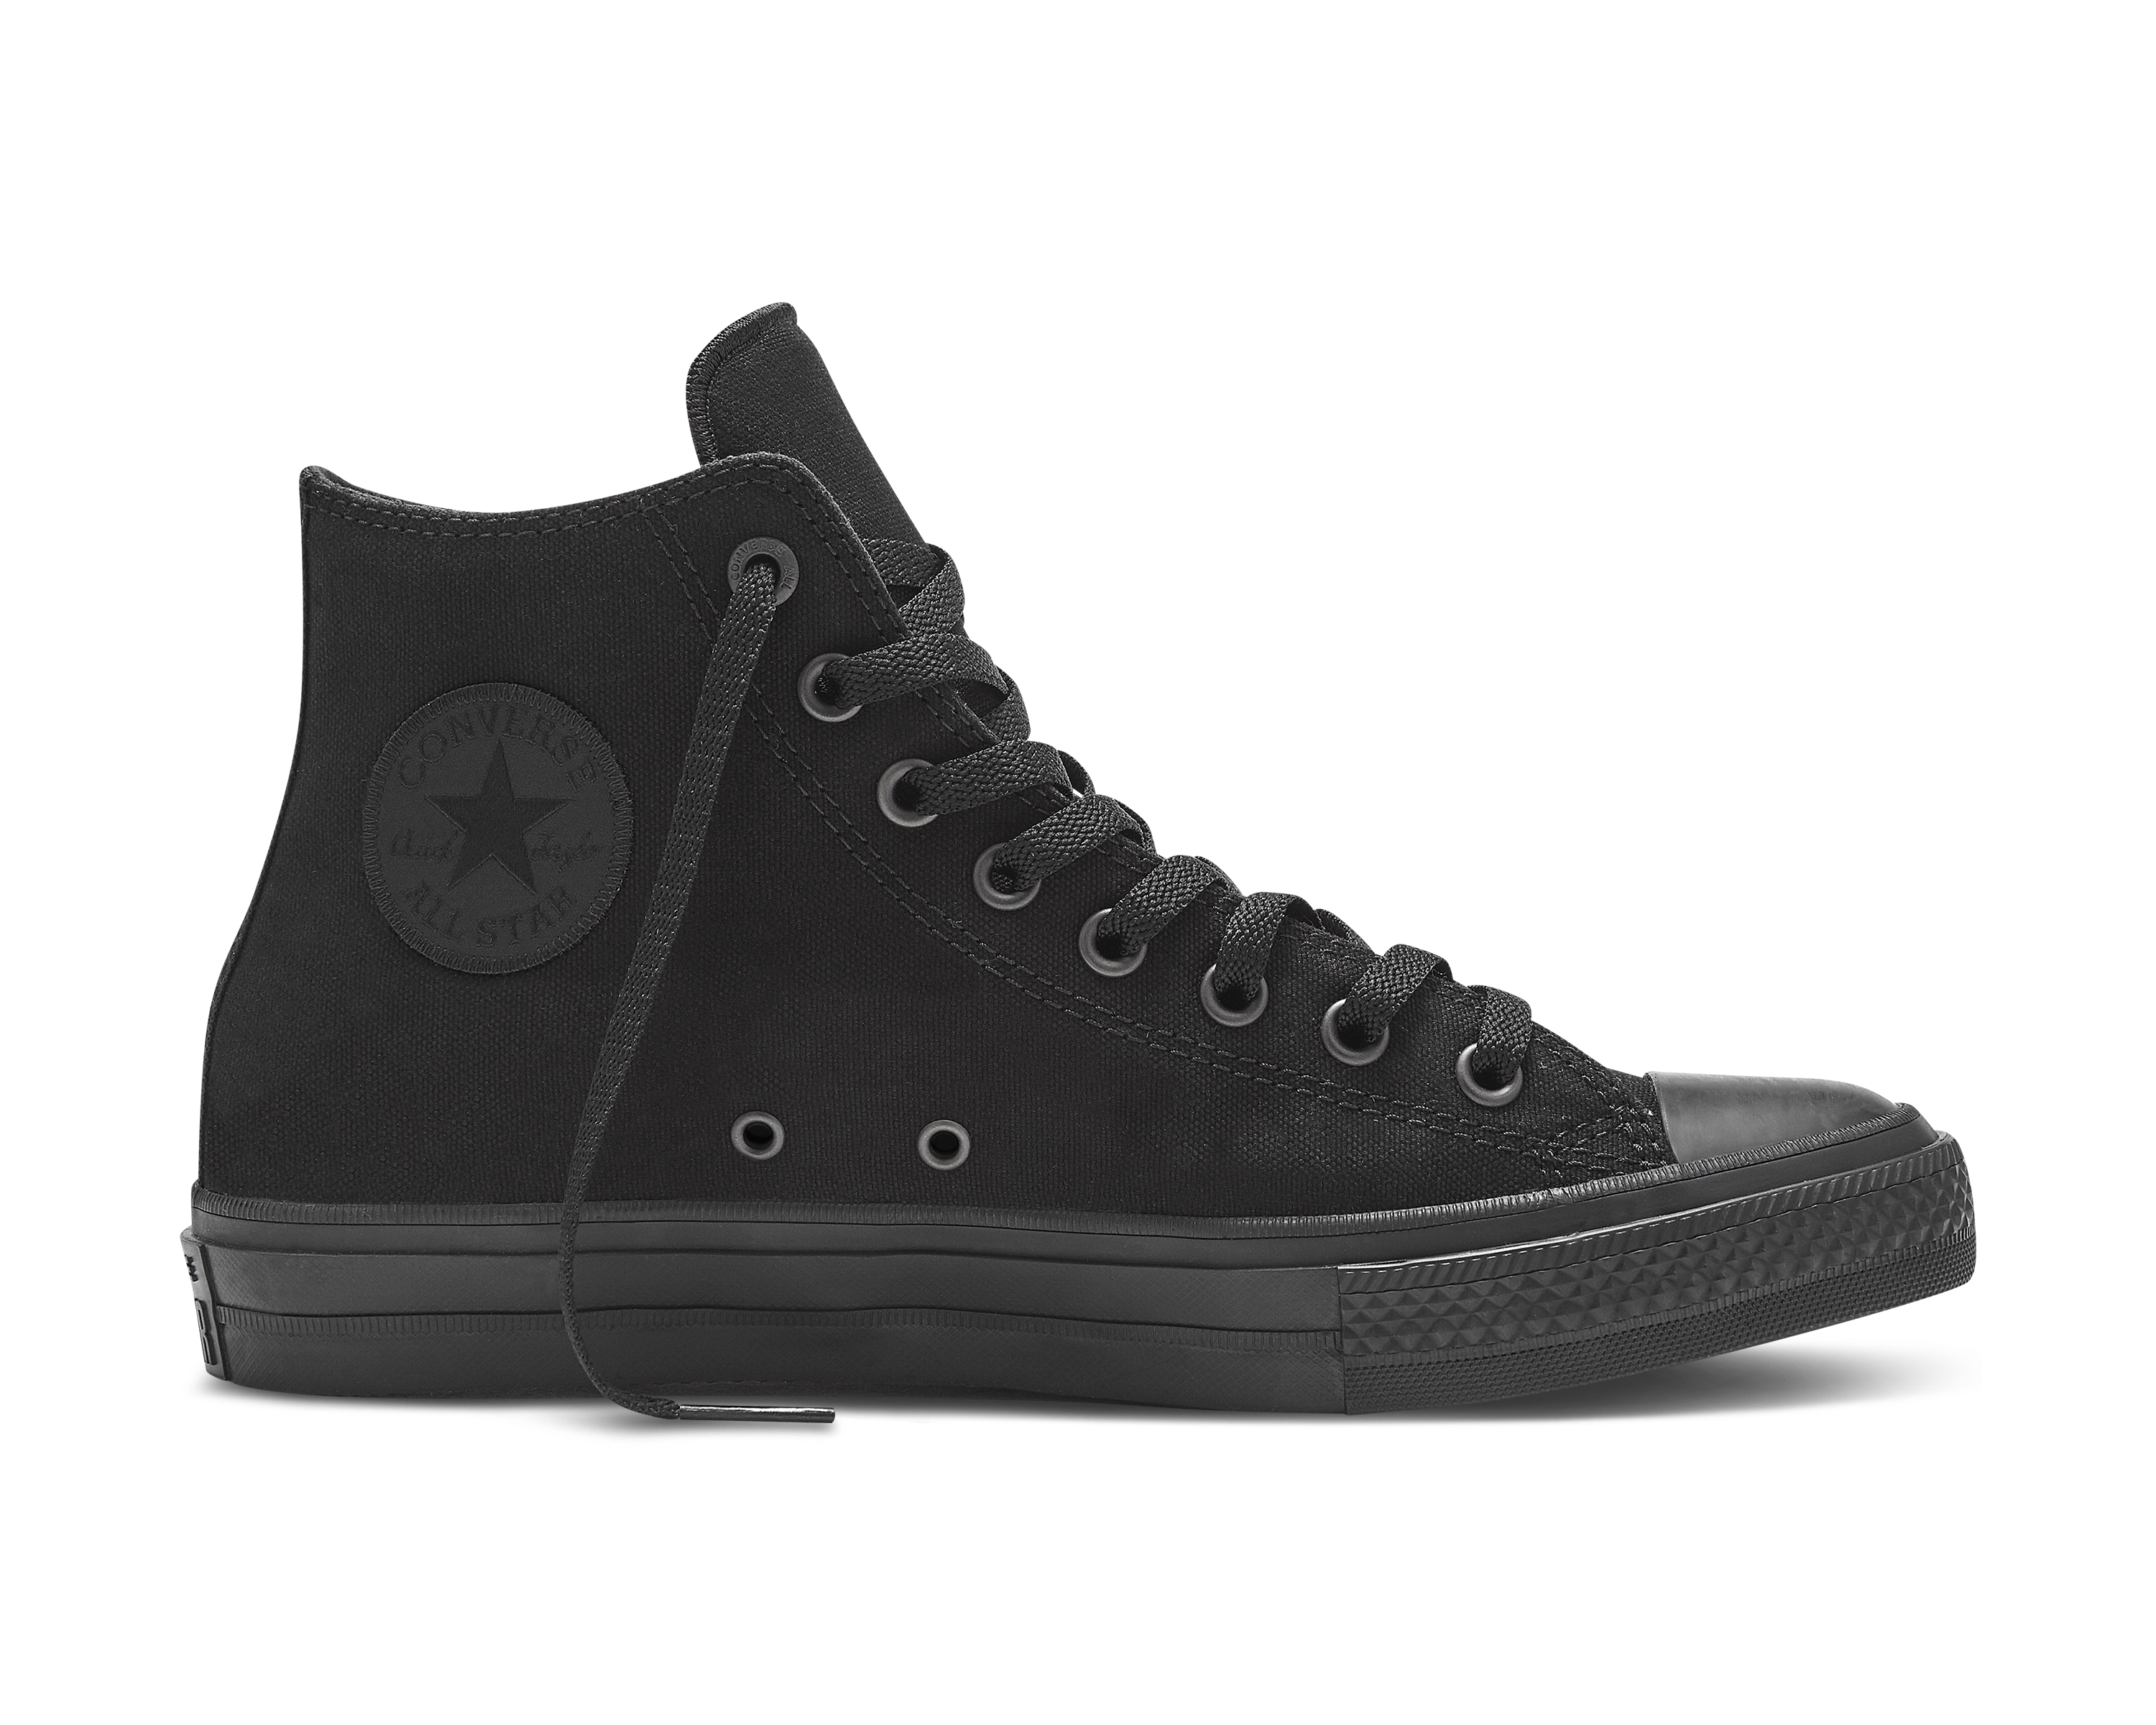 the converse chuck taylor all star ii mono nike news. Black Bedroom Furniture Sets. Home Design Ideas